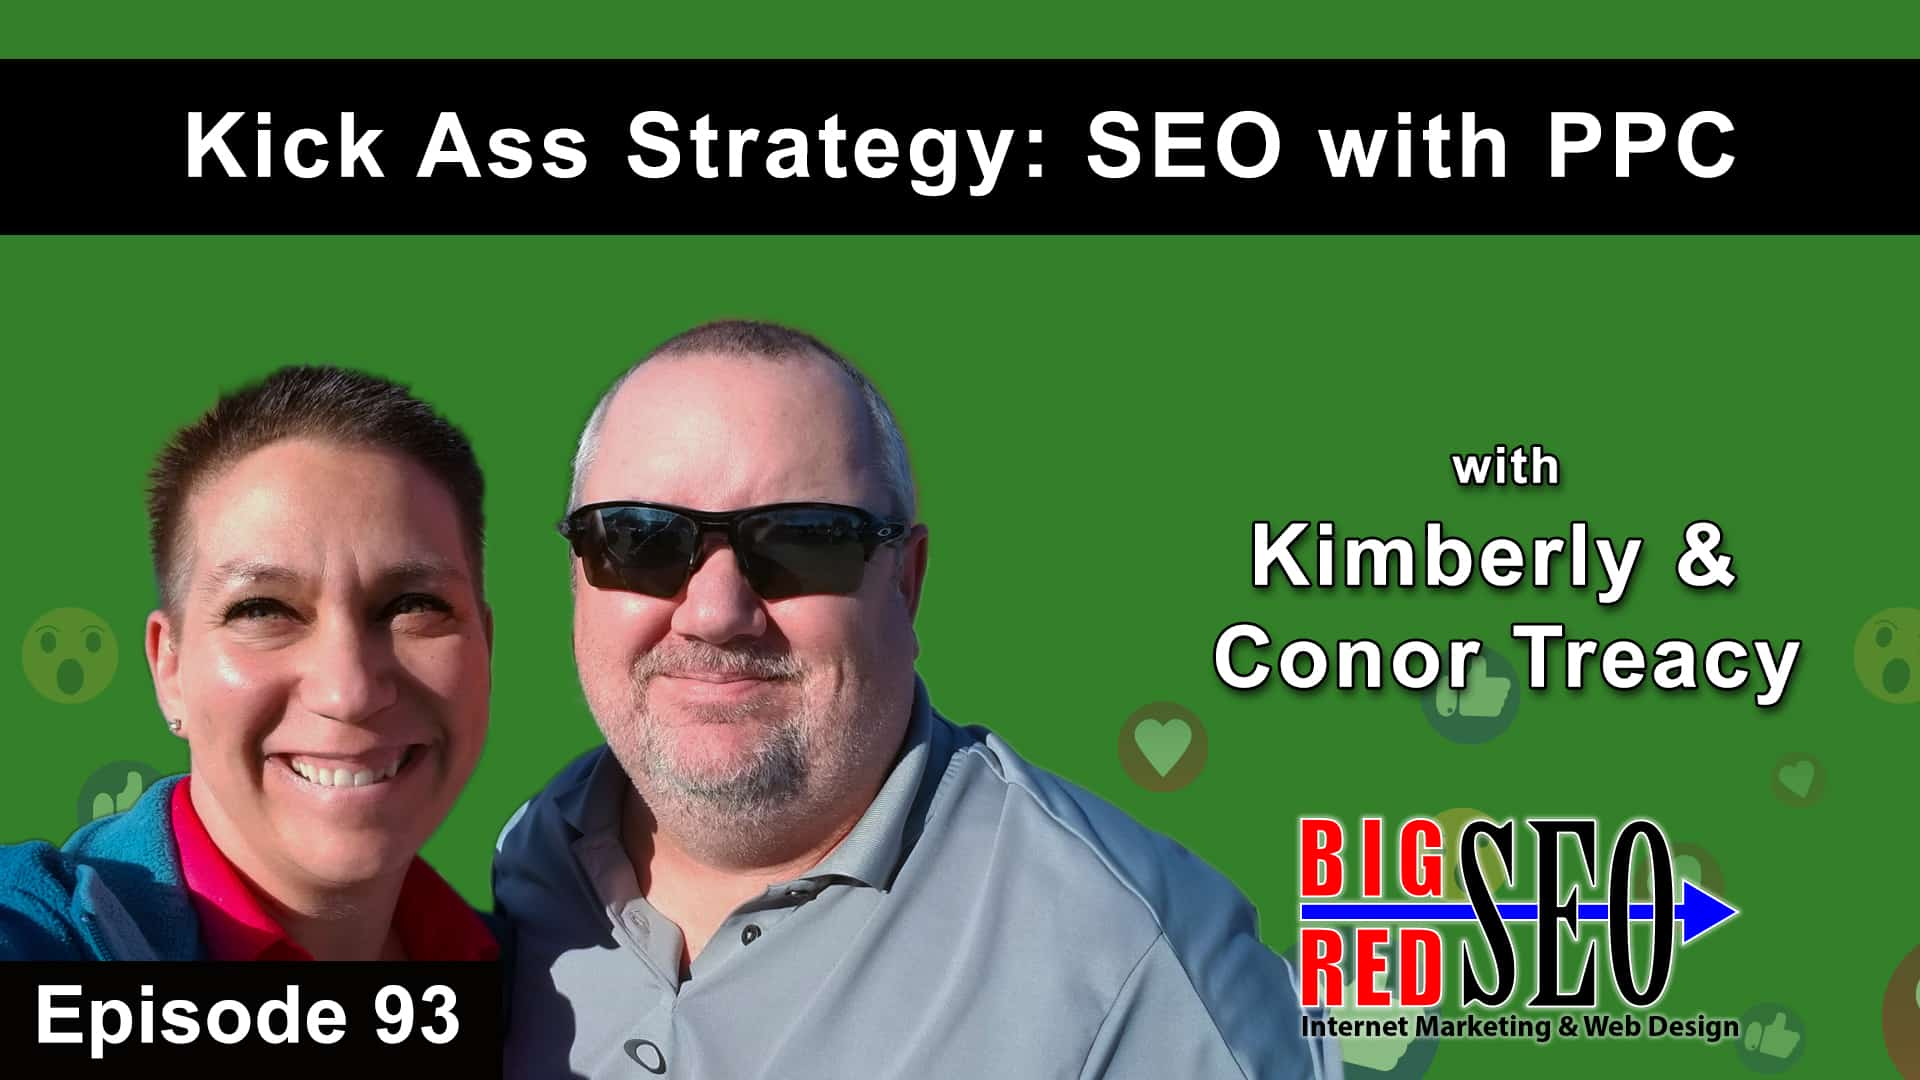 SEO vs PPC - Facebook Live Video